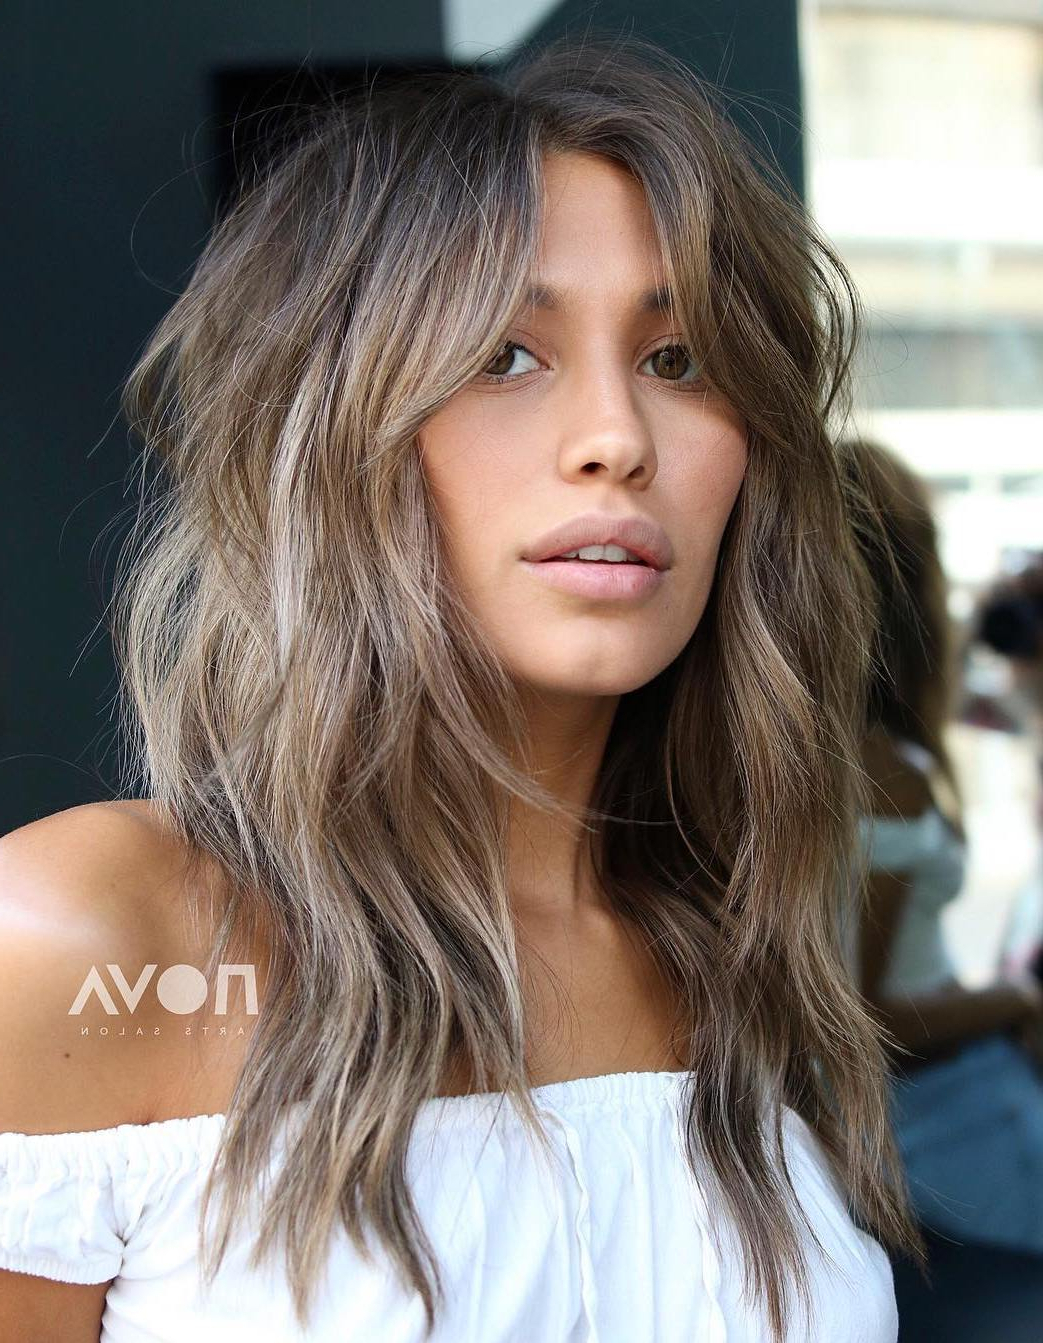 40 Modern Shag Haircuts For Women To Make A Splash Regarding Well Known Textured Shag Haircuts With Warm Brown Balayage (View 4 of 20)